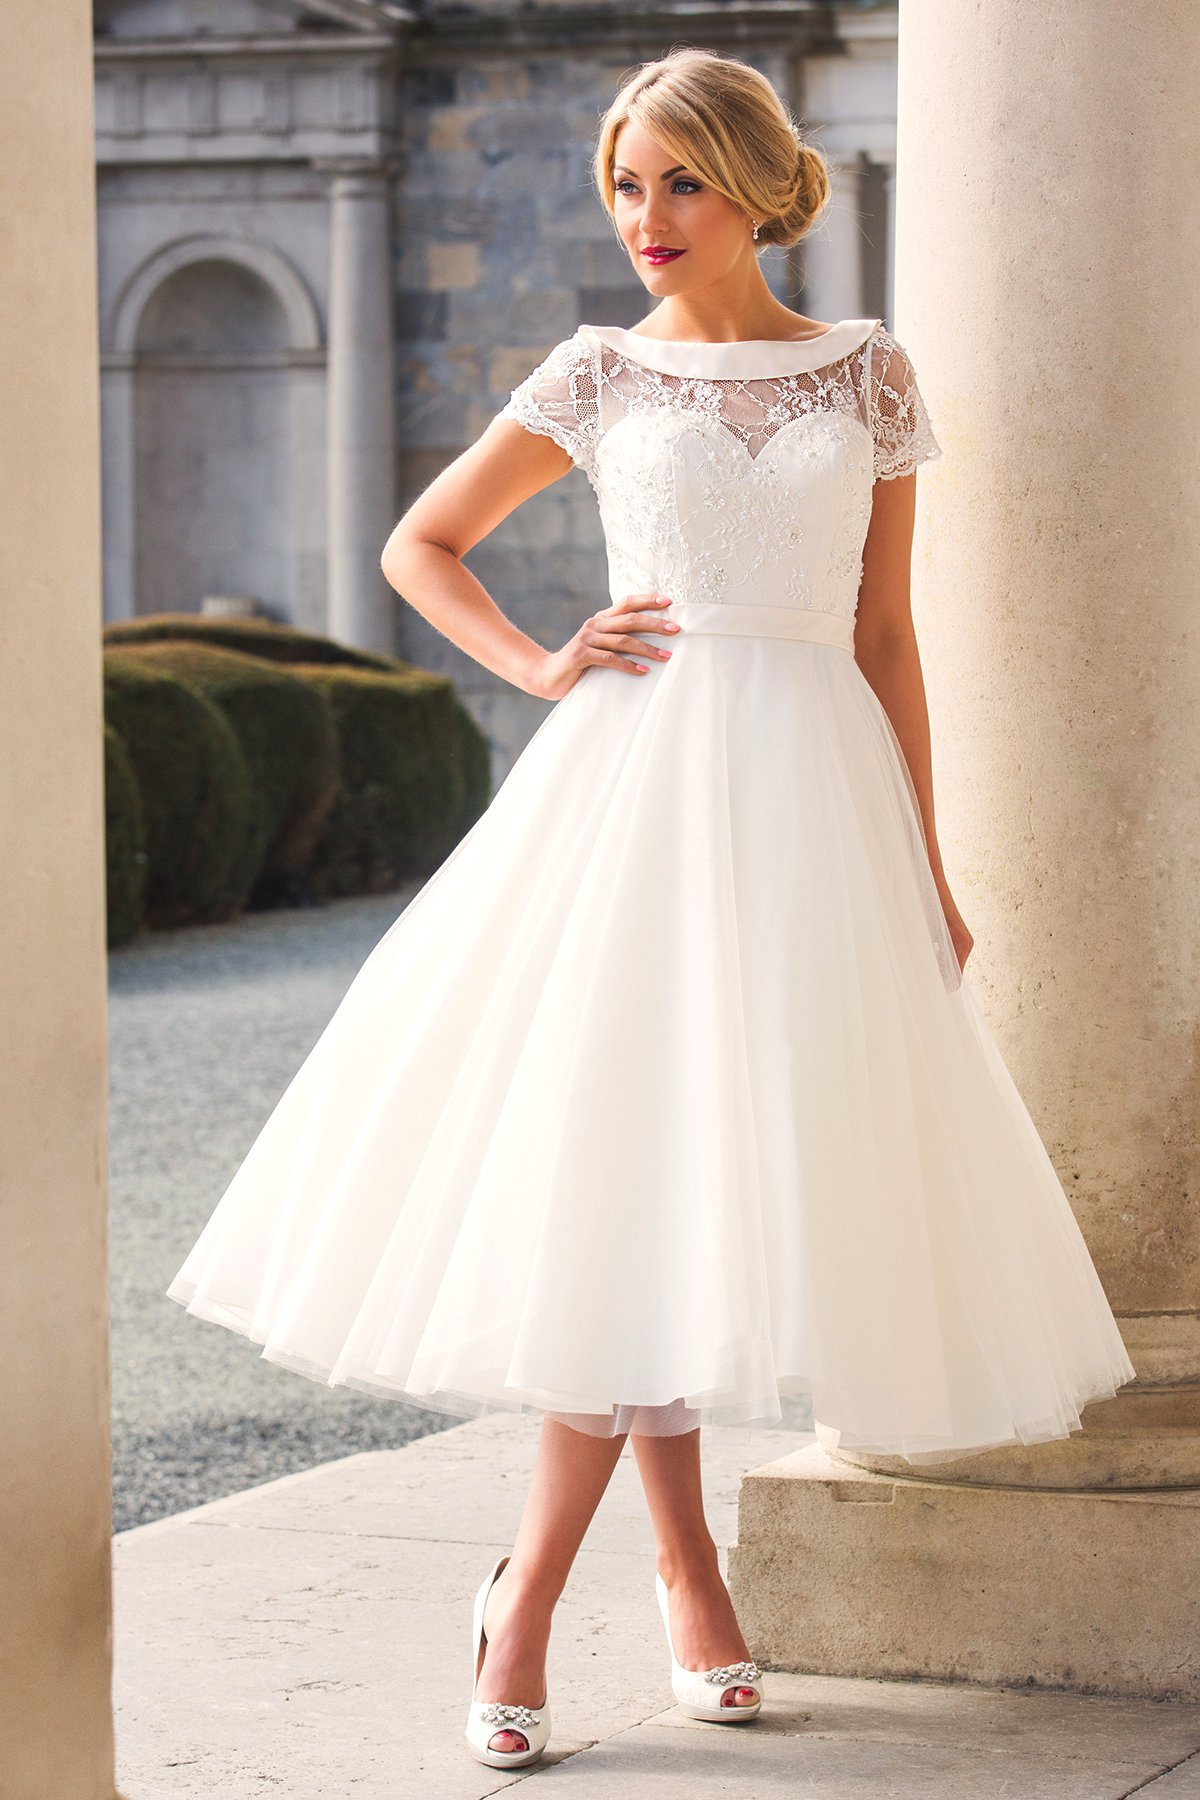 Weding Dreses For Older Brides Plus Size 06 - Weding Dreses For Older Brides Plus Size